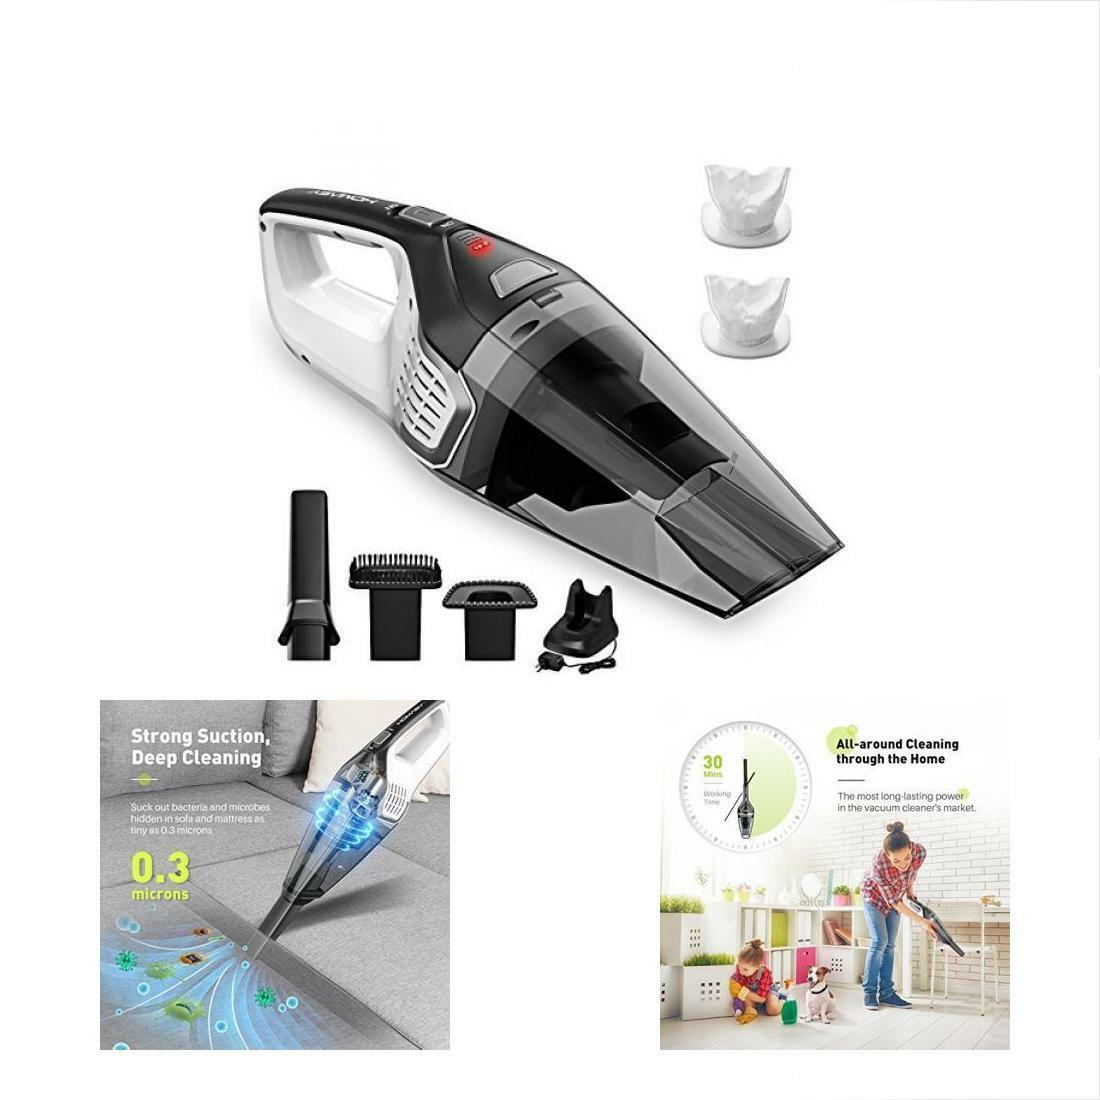 Homasy Handheld Vacuums Rechargeable Cordless, Powerful Cyclonic Suction 14.8V